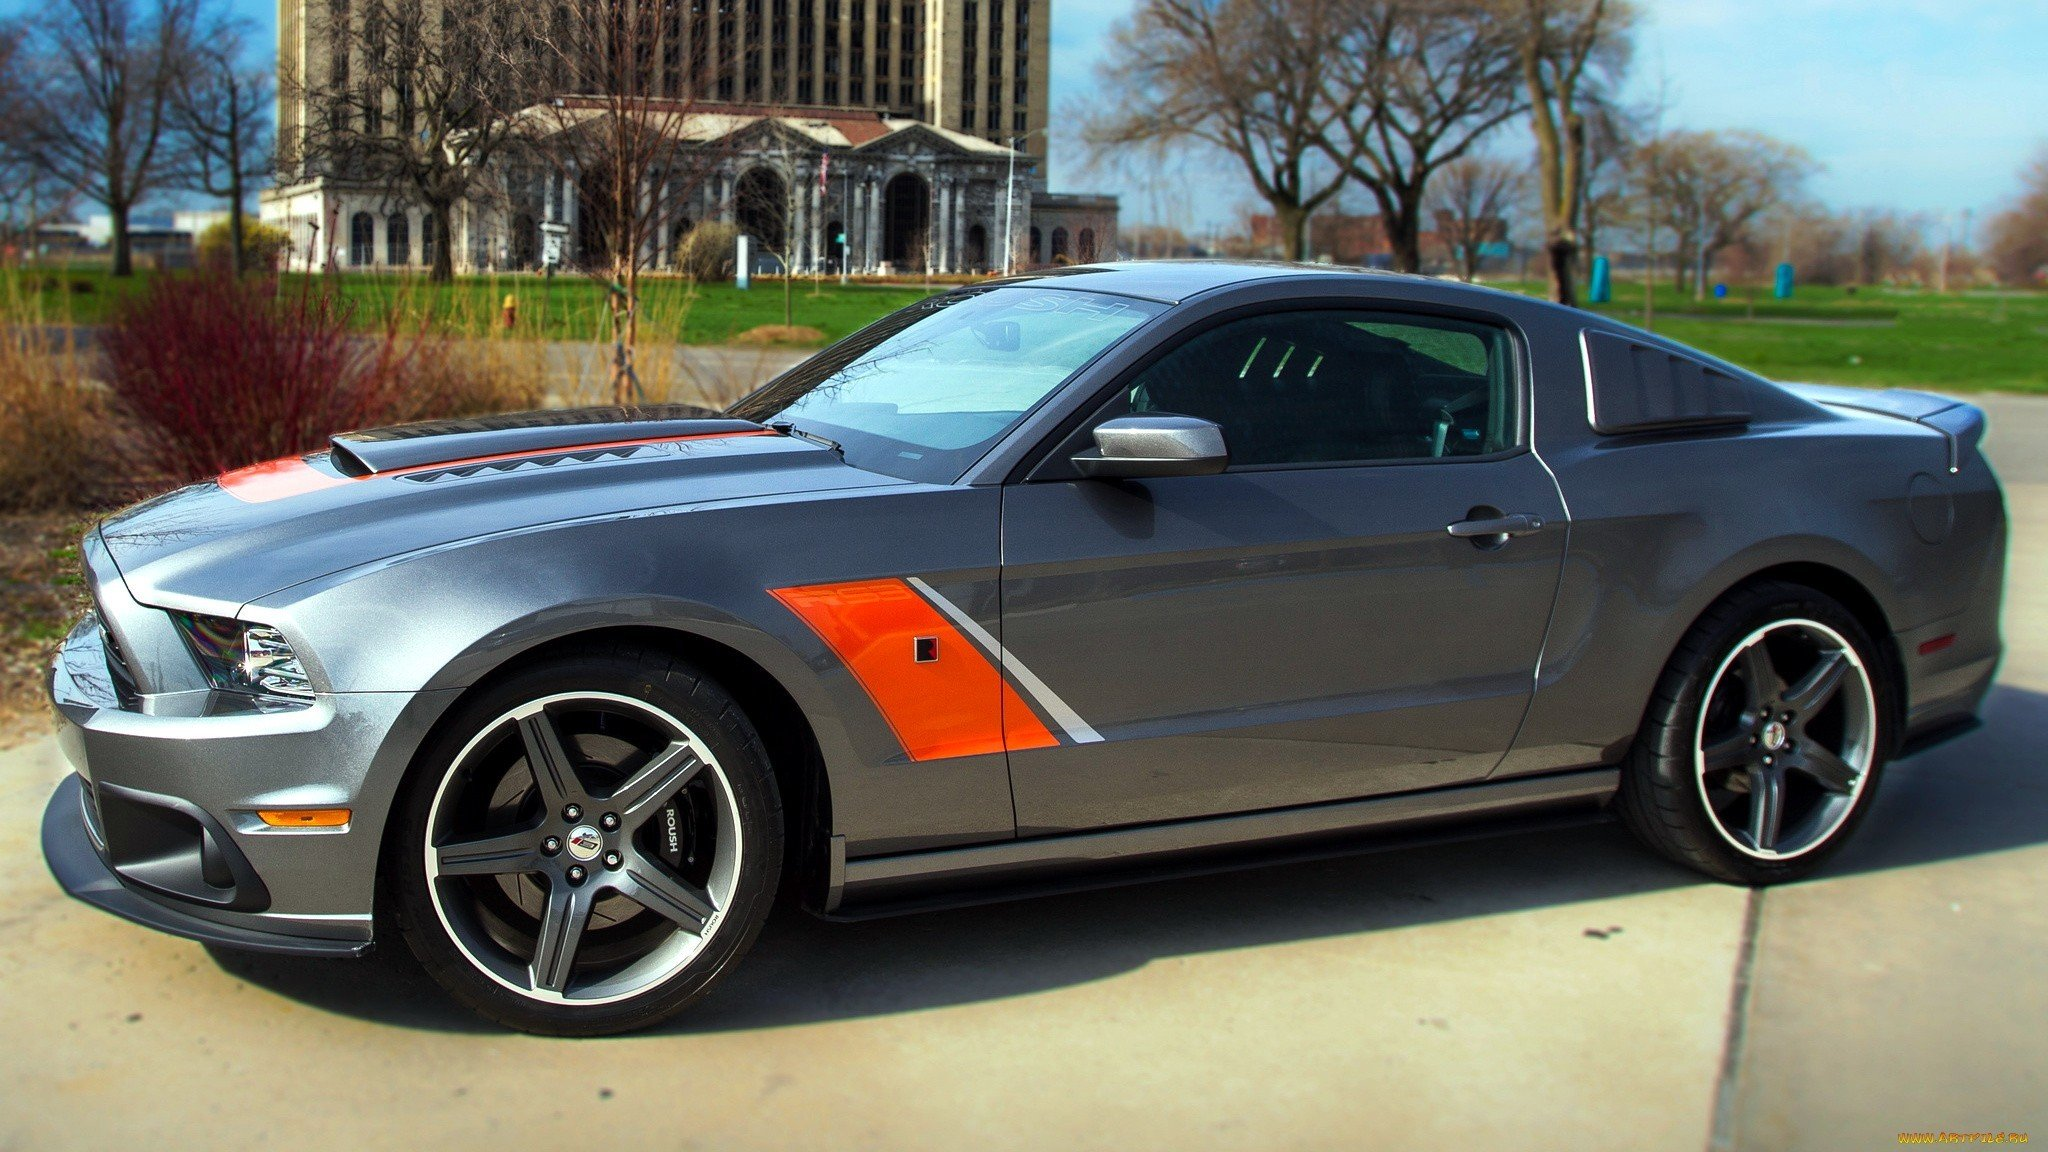 Ford Ford Mustang Muscle Car Shelby Gt500 Shelby Gt 500 Gt 500